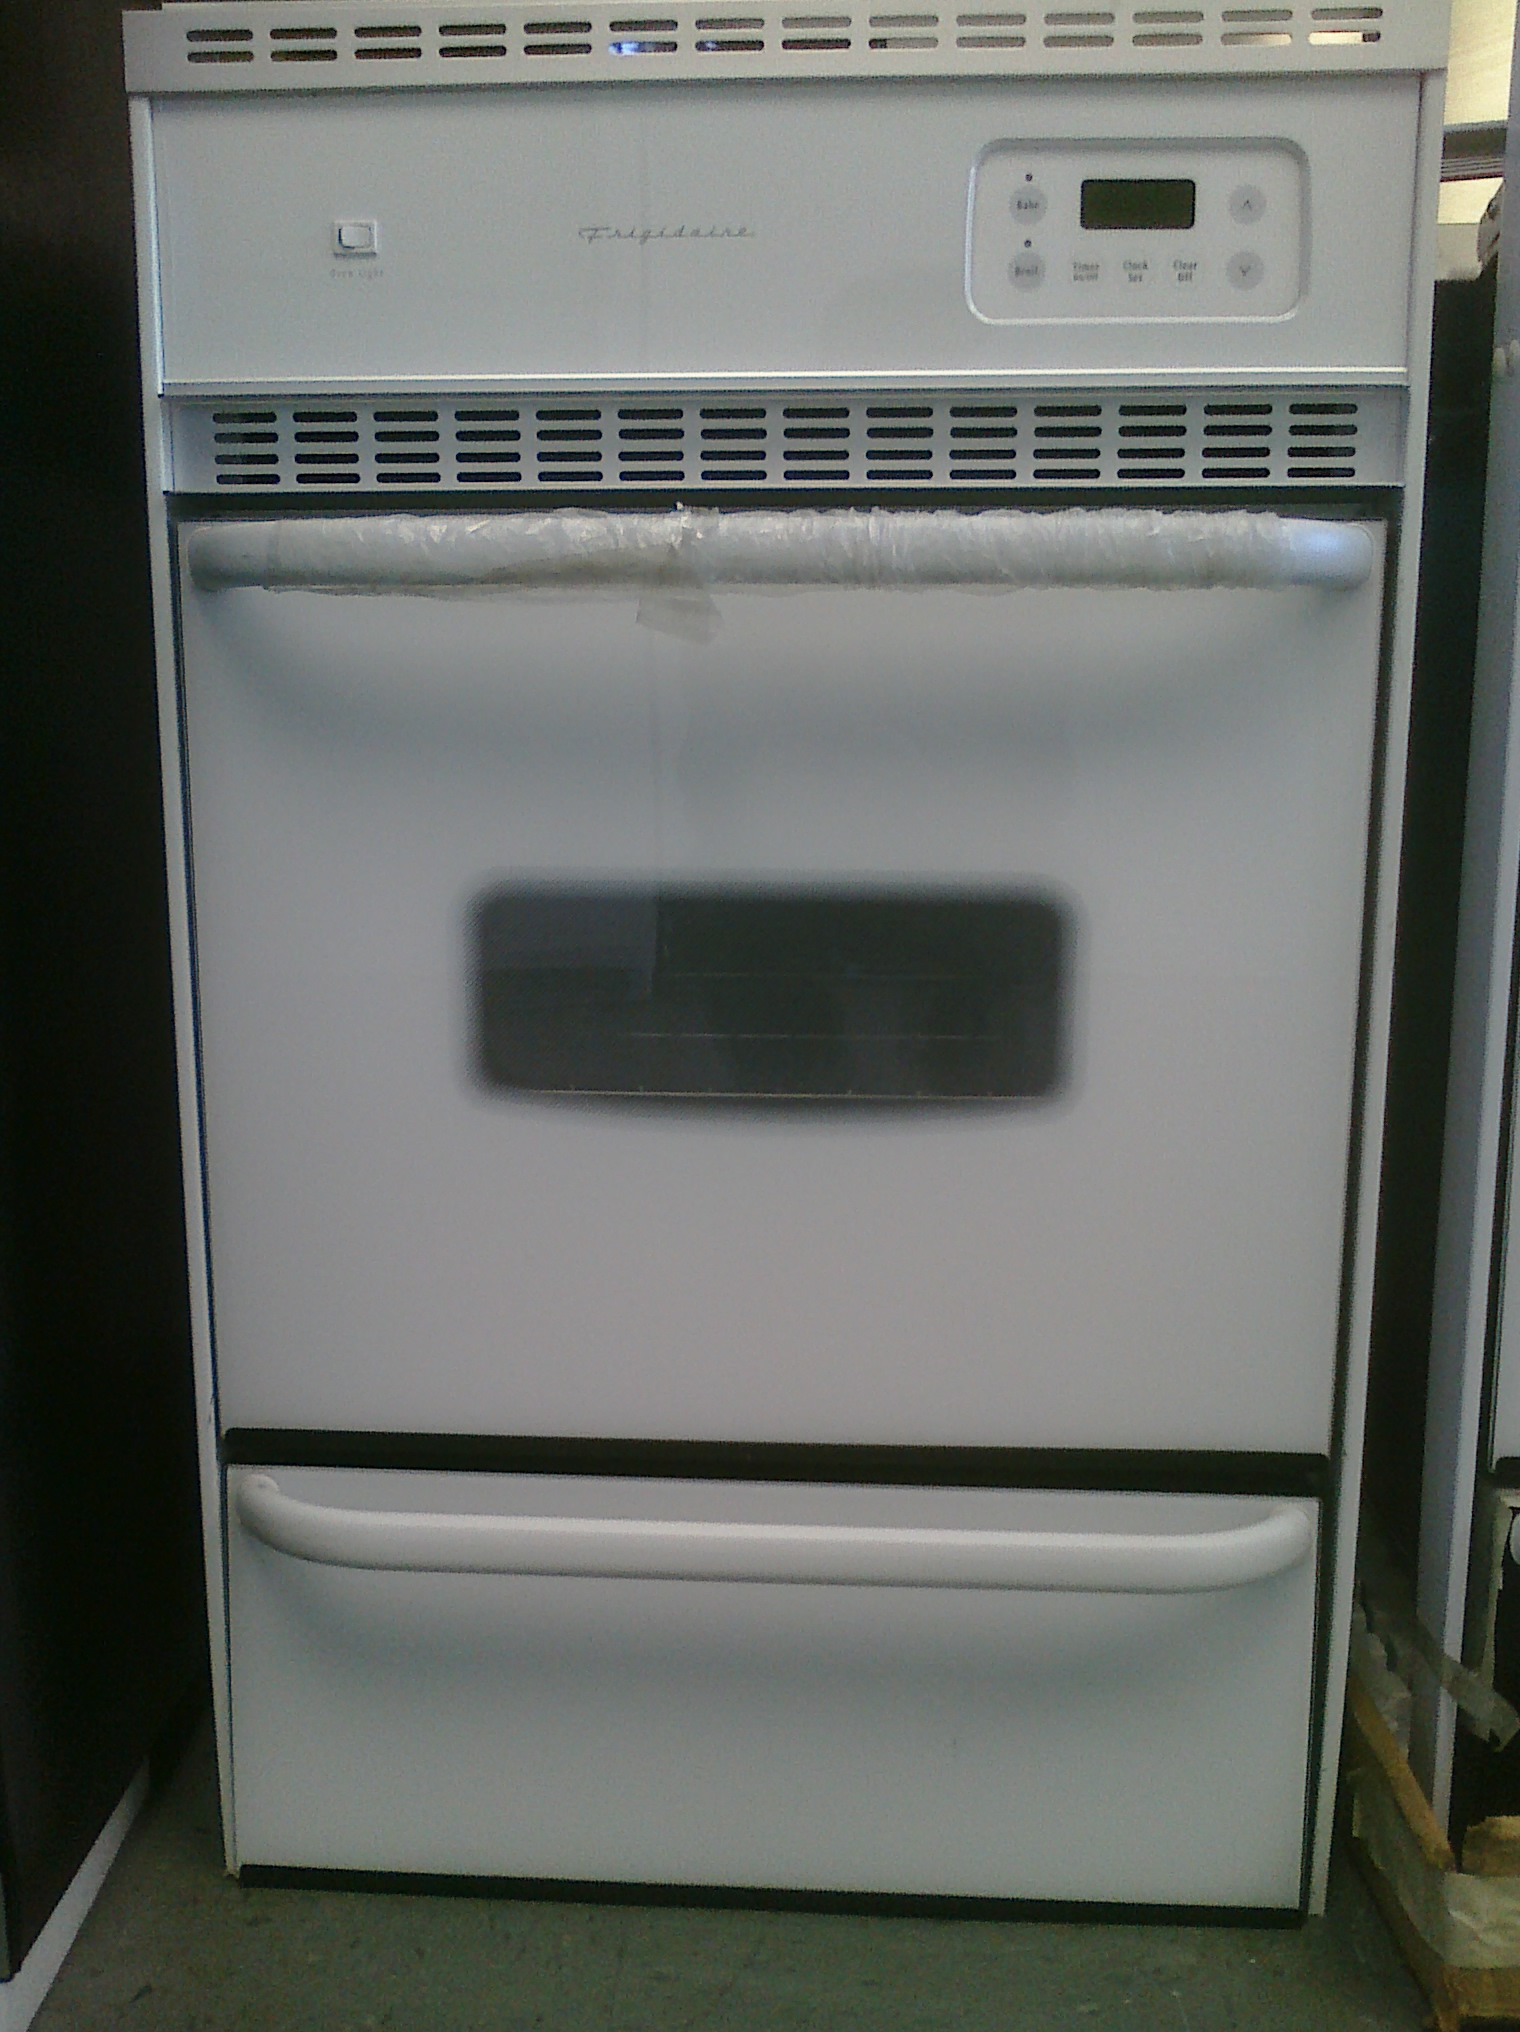 7 Frigidaire Fgb24l2as 24 Gas Wall Oven White Feder